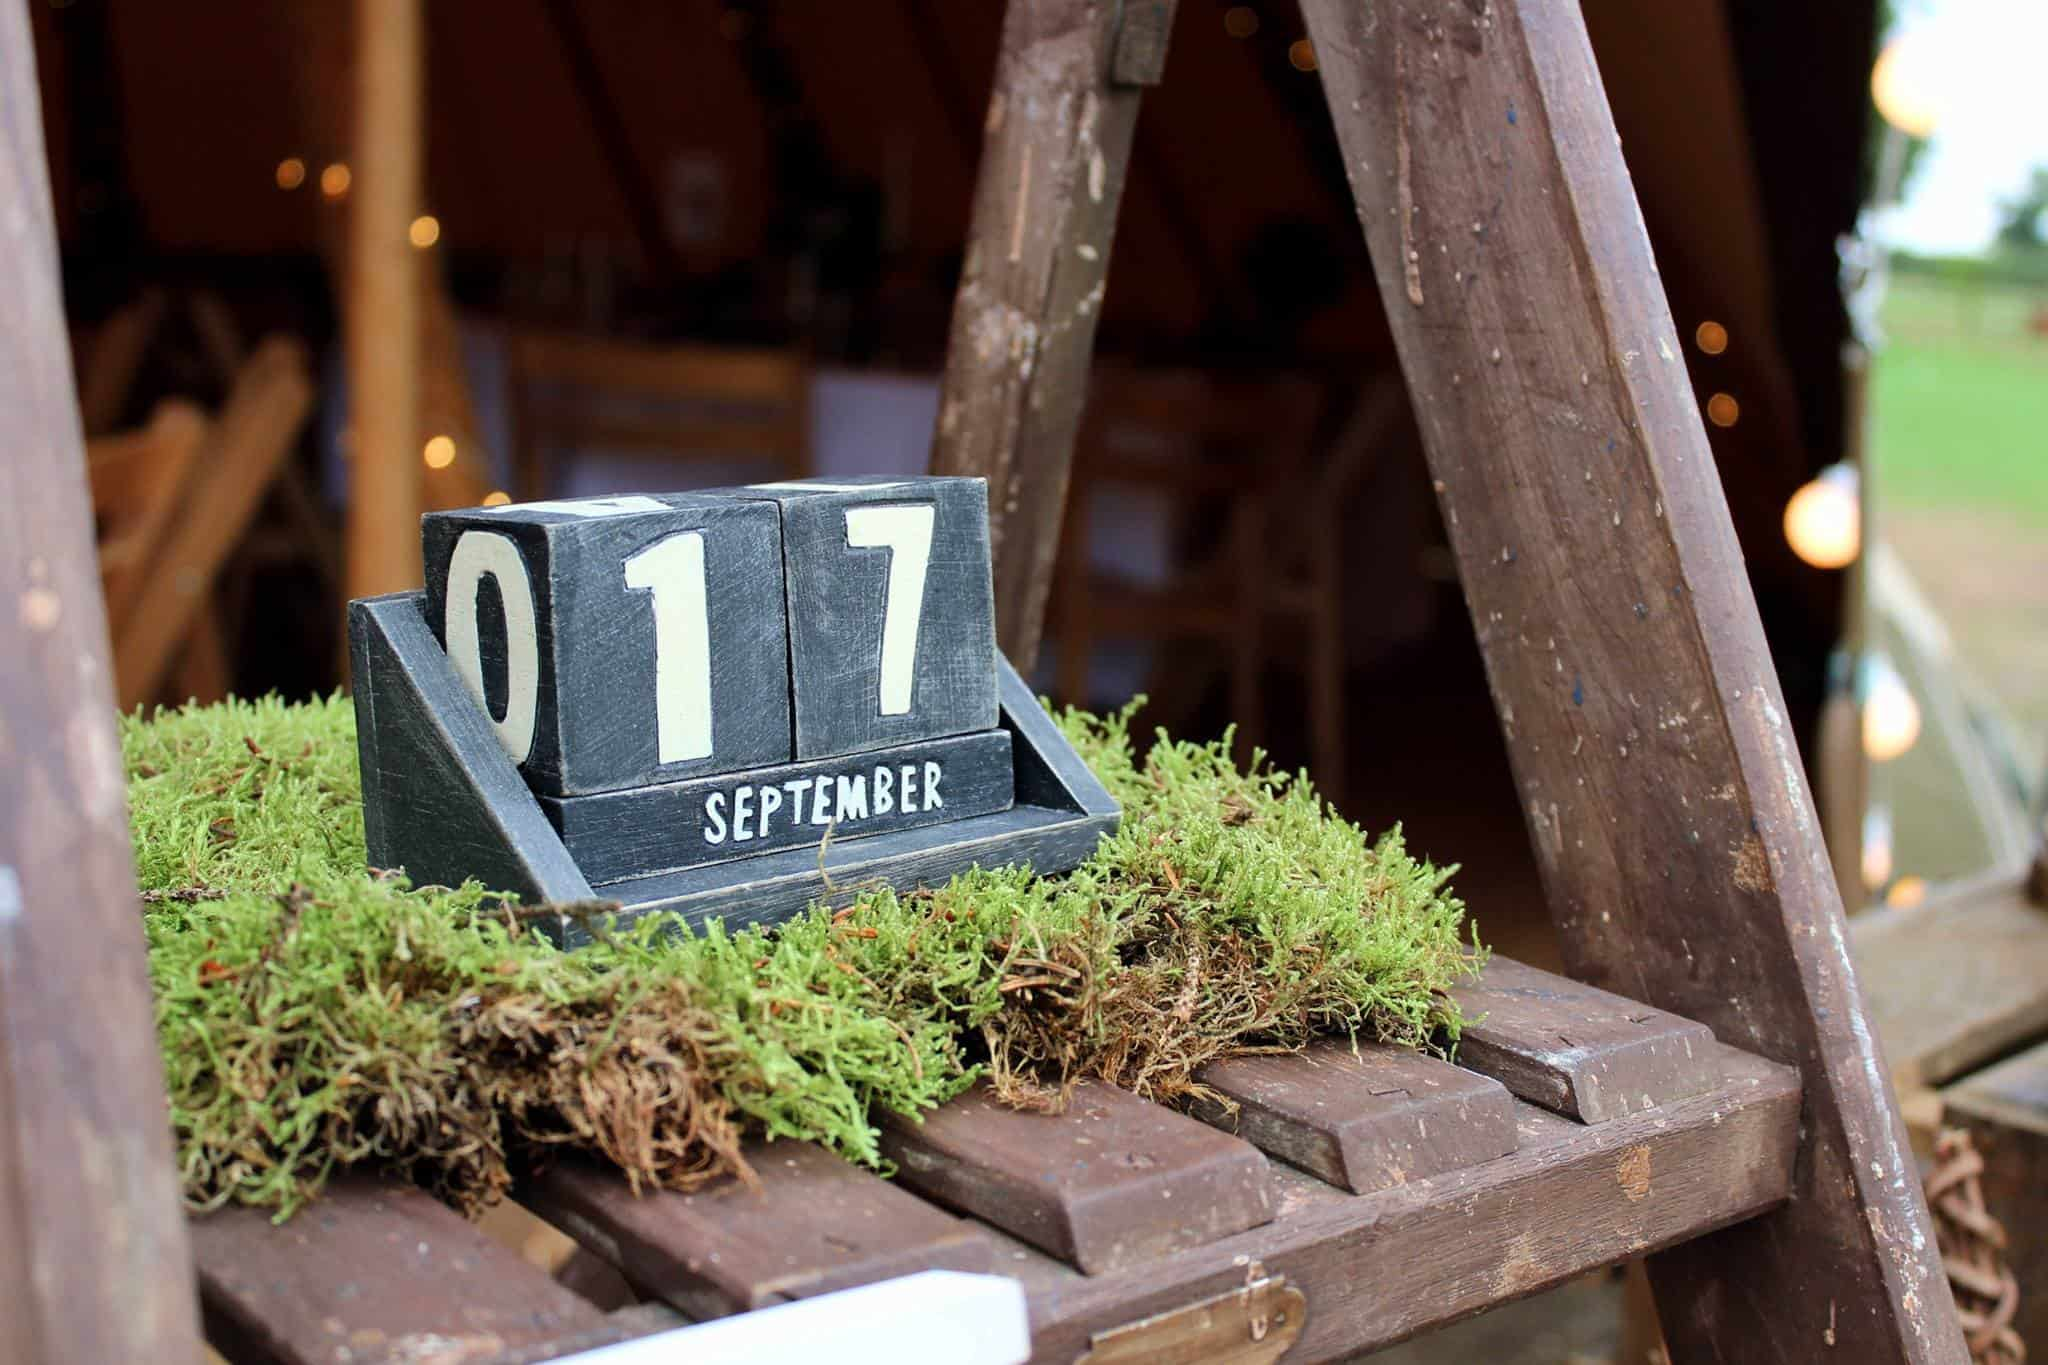 Rustic Ladders & Moss - Woodland themed styling by The Rustic Wedding Company